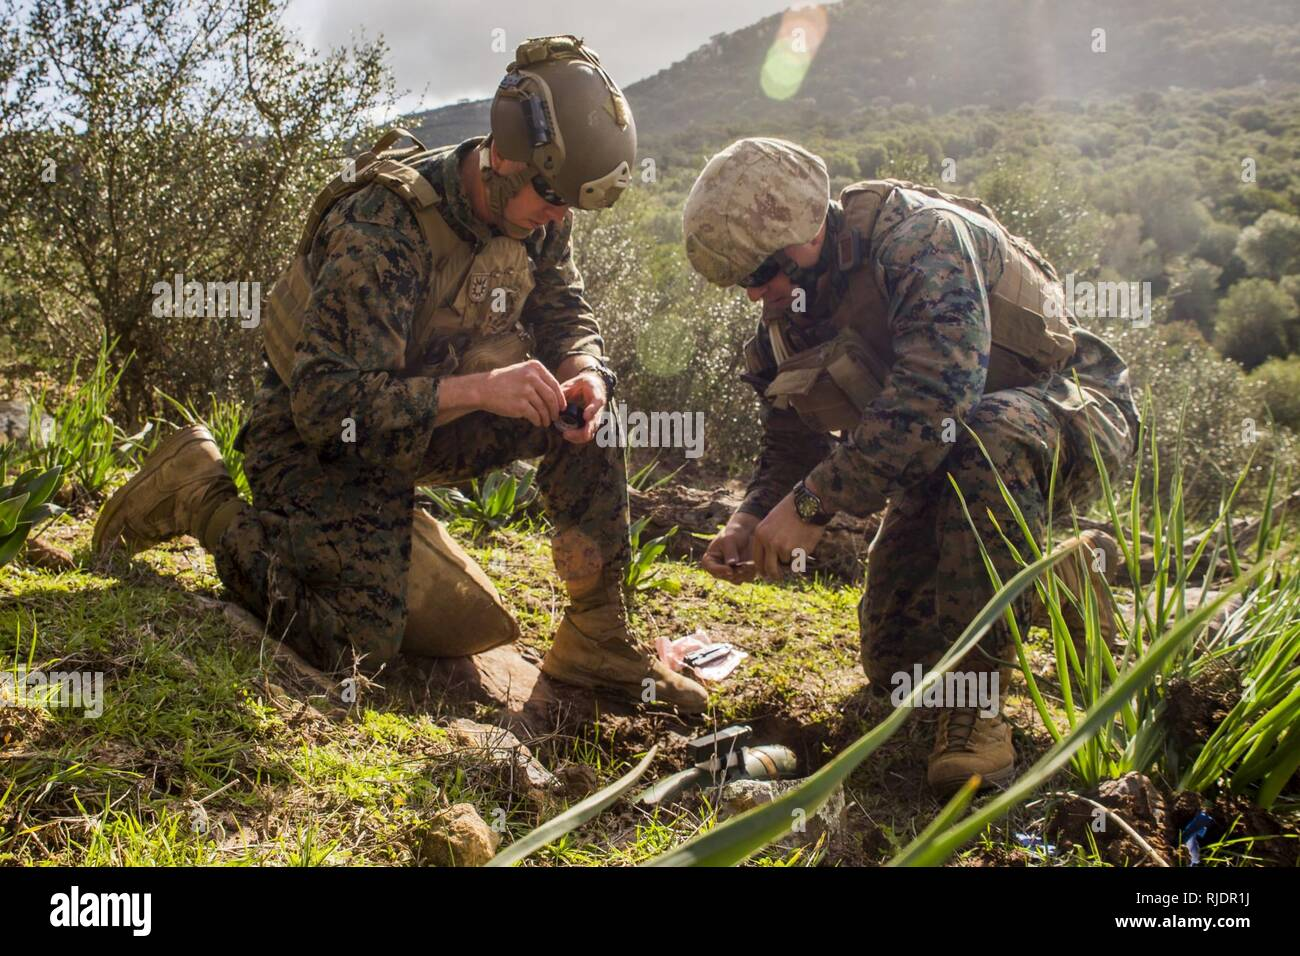 U.S. explosive ordnance disposal Marines with Special Purpose Marine Air-Ground Task Force-Crisis Response-Africa prepare ordnance for detonation at Sierra del Retin, Spain, Jan. 18, 2018. SPMAGTF-CR-AF is deployed to conduct limited crisis-response and theater-security operations in Europe and North Africa. - Stock Image